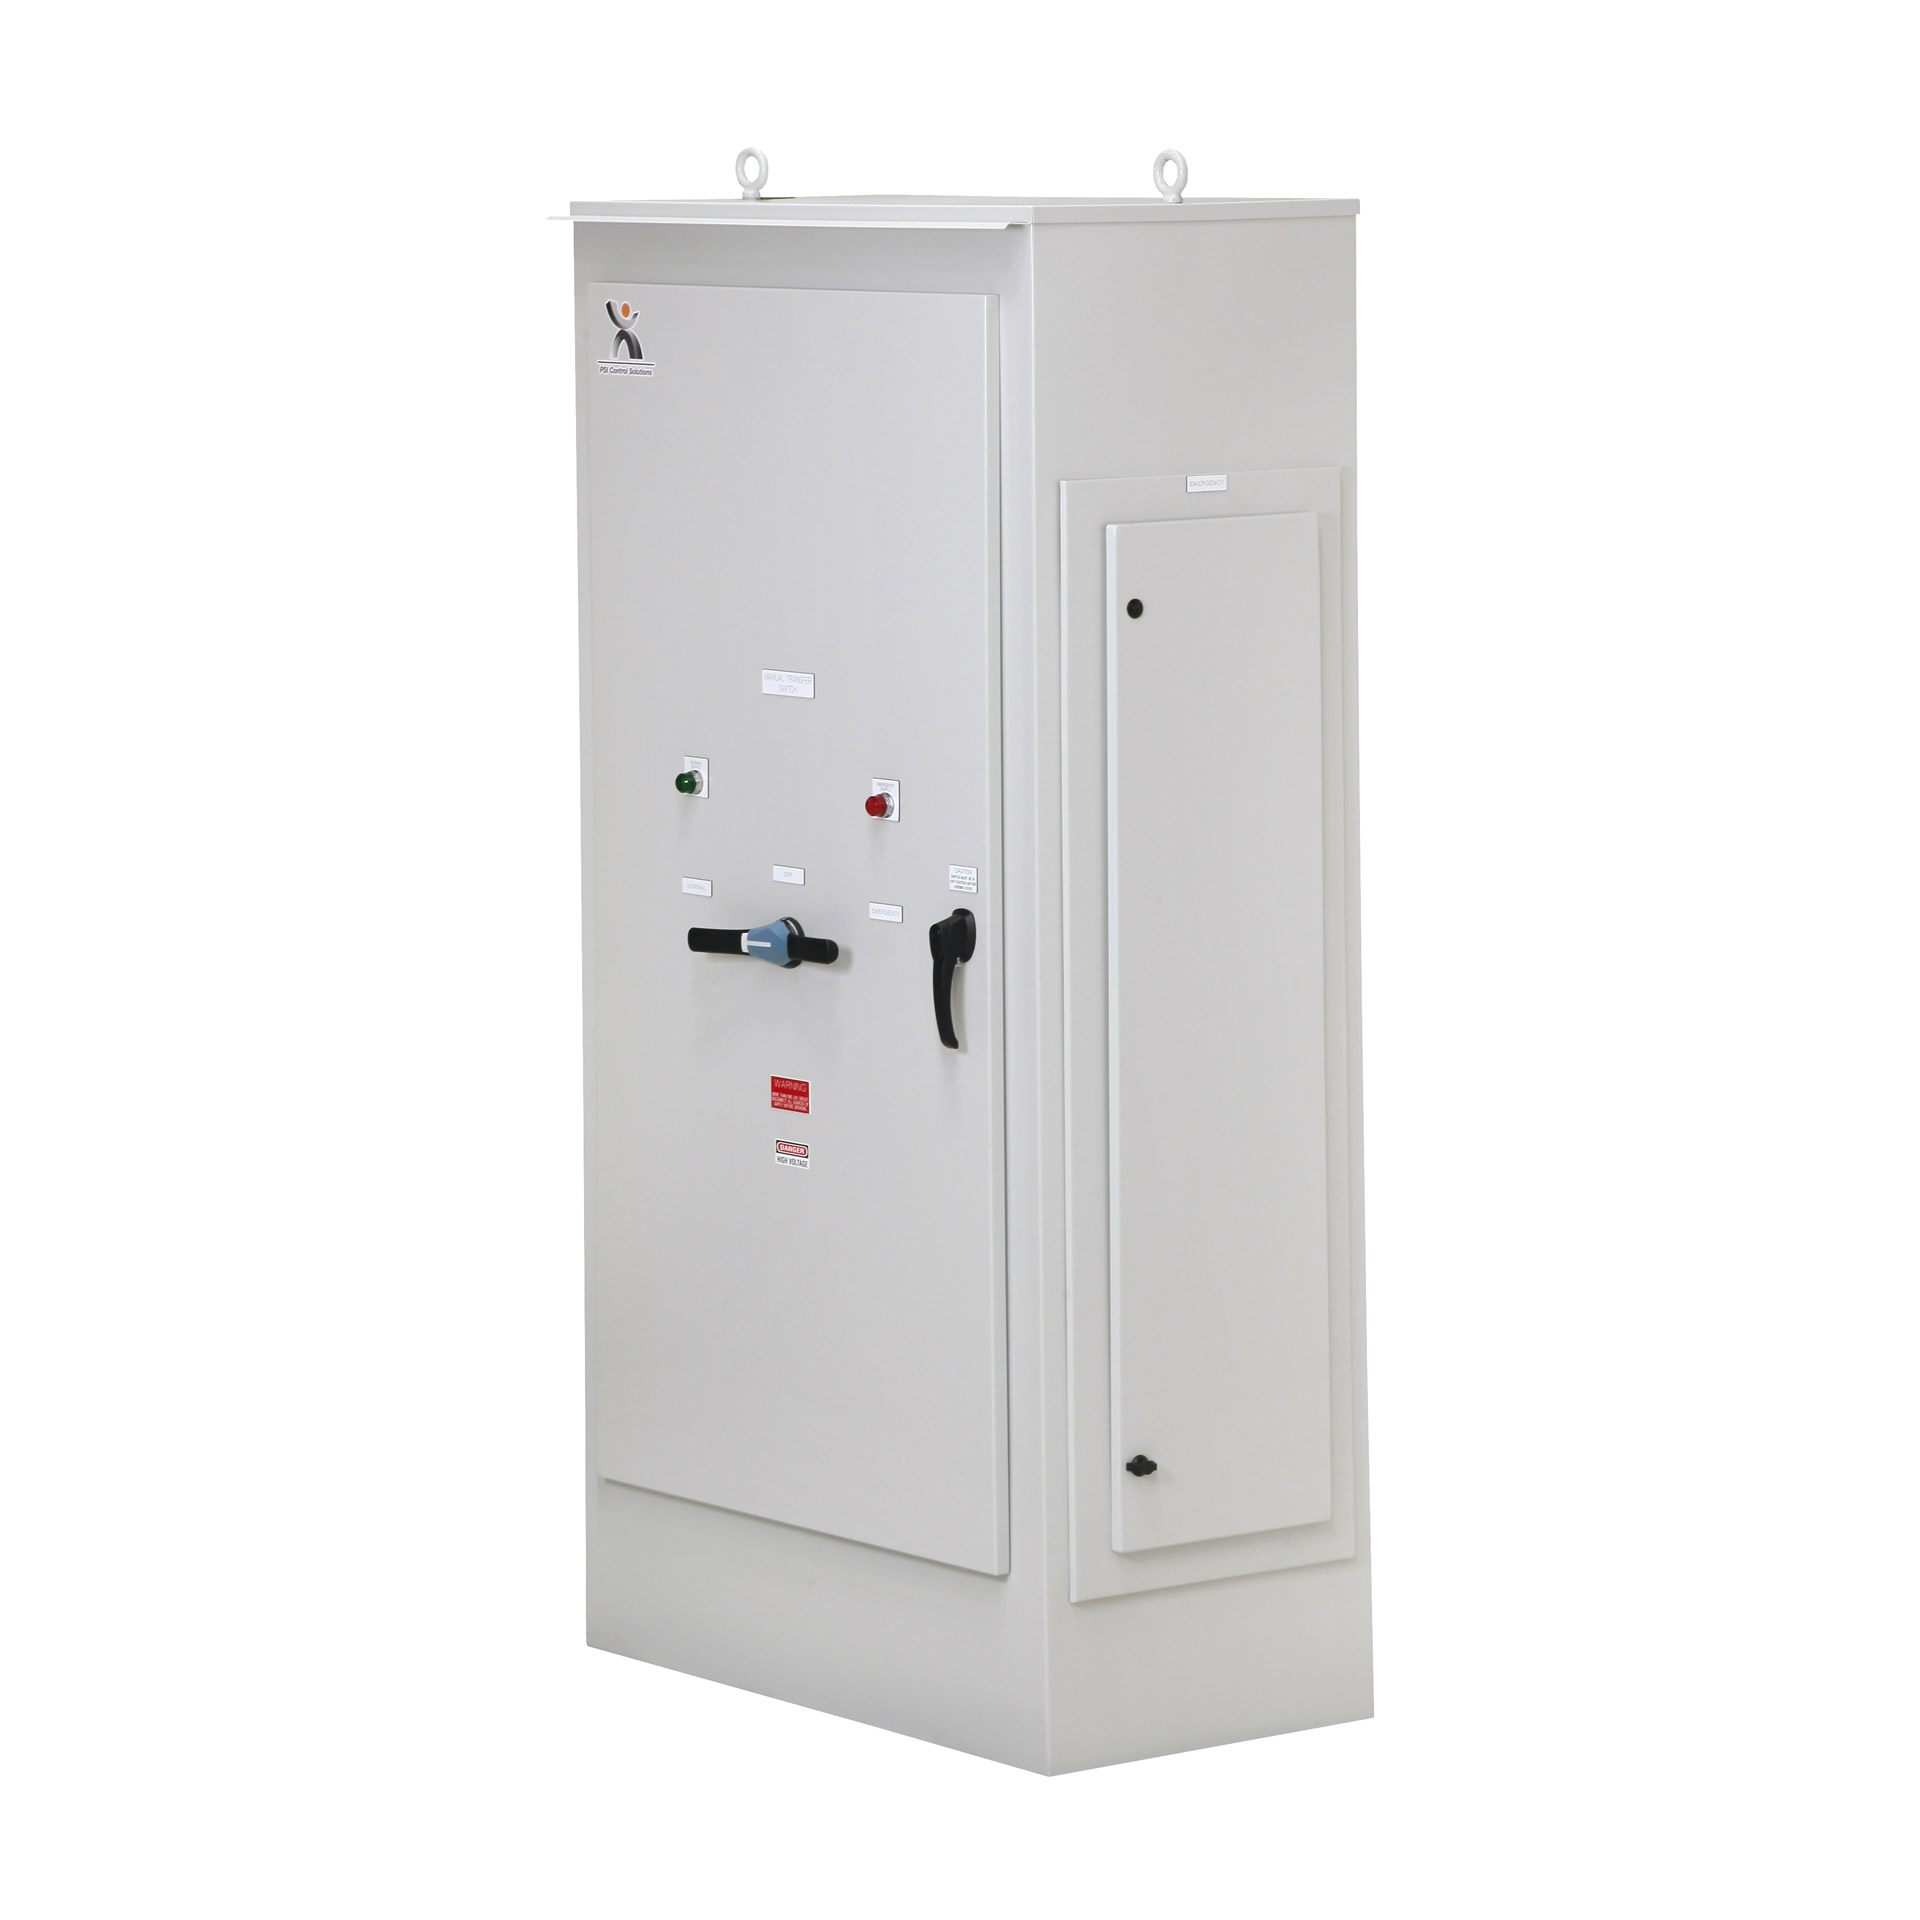 our products transfer switches, generator tap box, safety switches